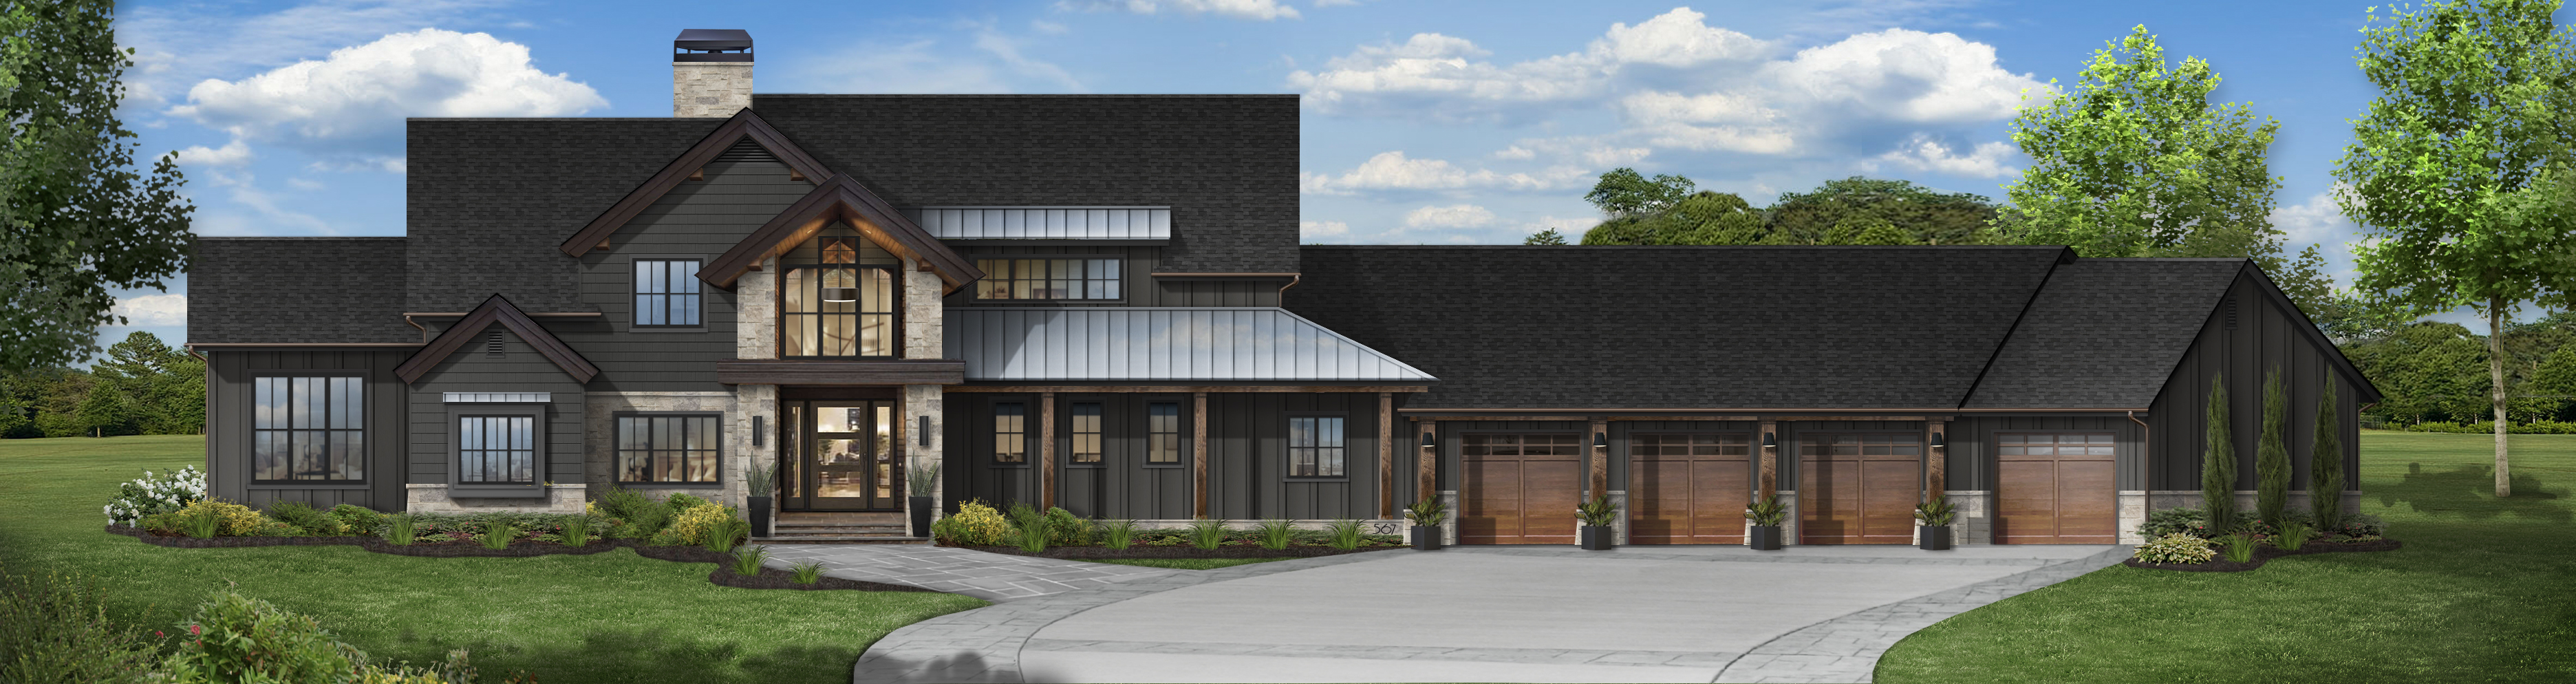 Virtual exterior design of a transitional home painted in Iron Ore with Marvin windows and wood and stone accents